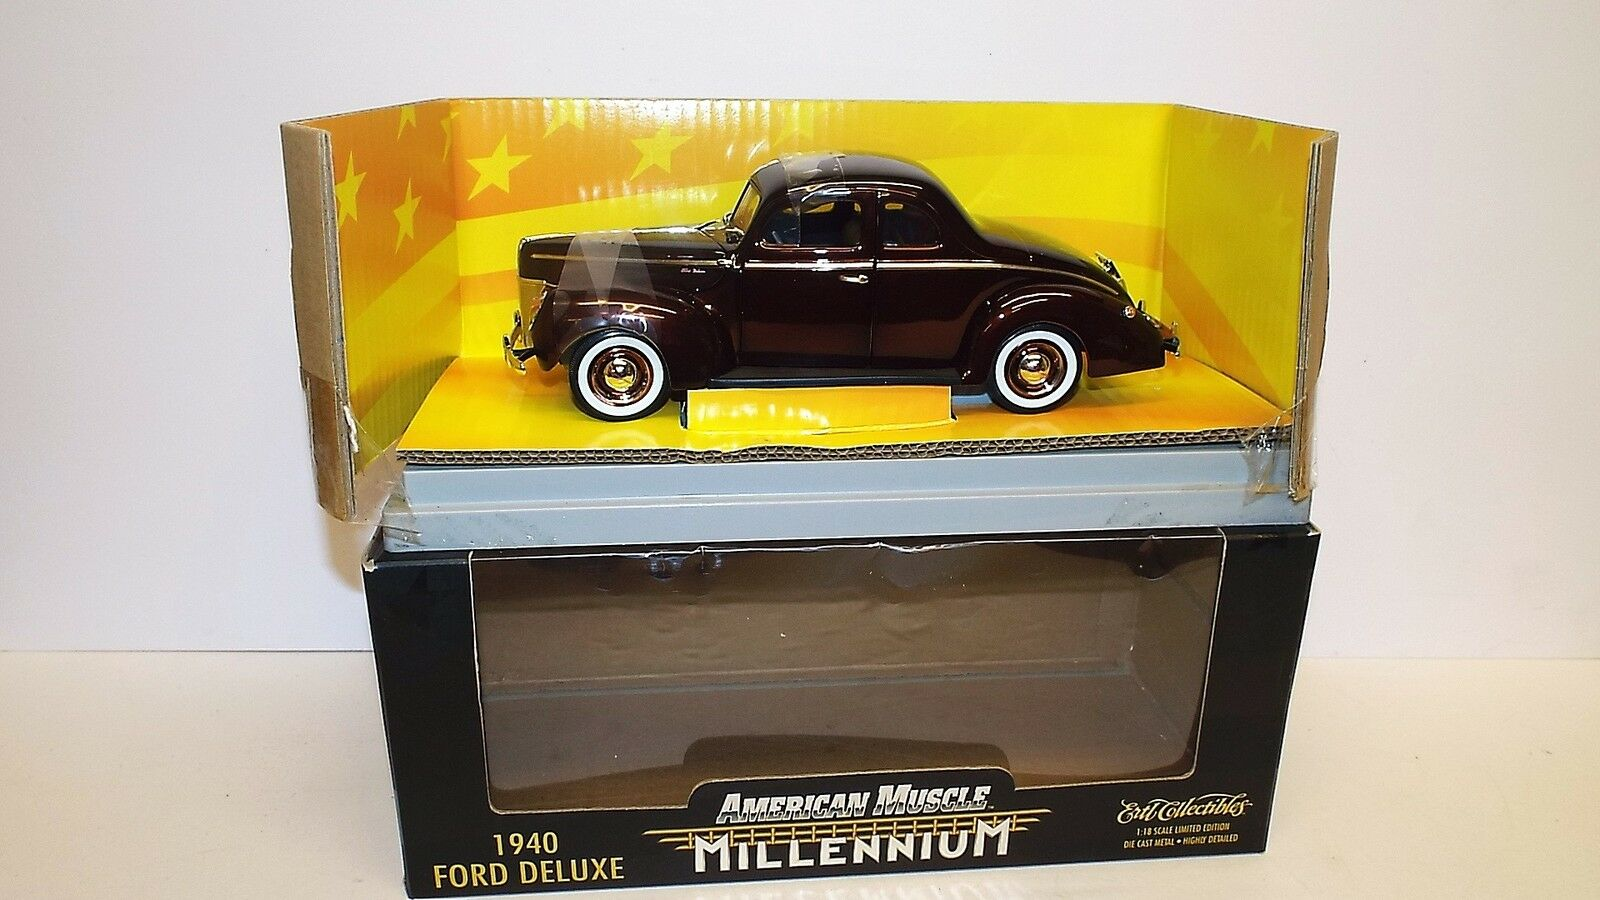 AMERICAN MUSCLE 1940 FORD DELUXE MILLENNIUM  MINT BOXED (1 18-19)